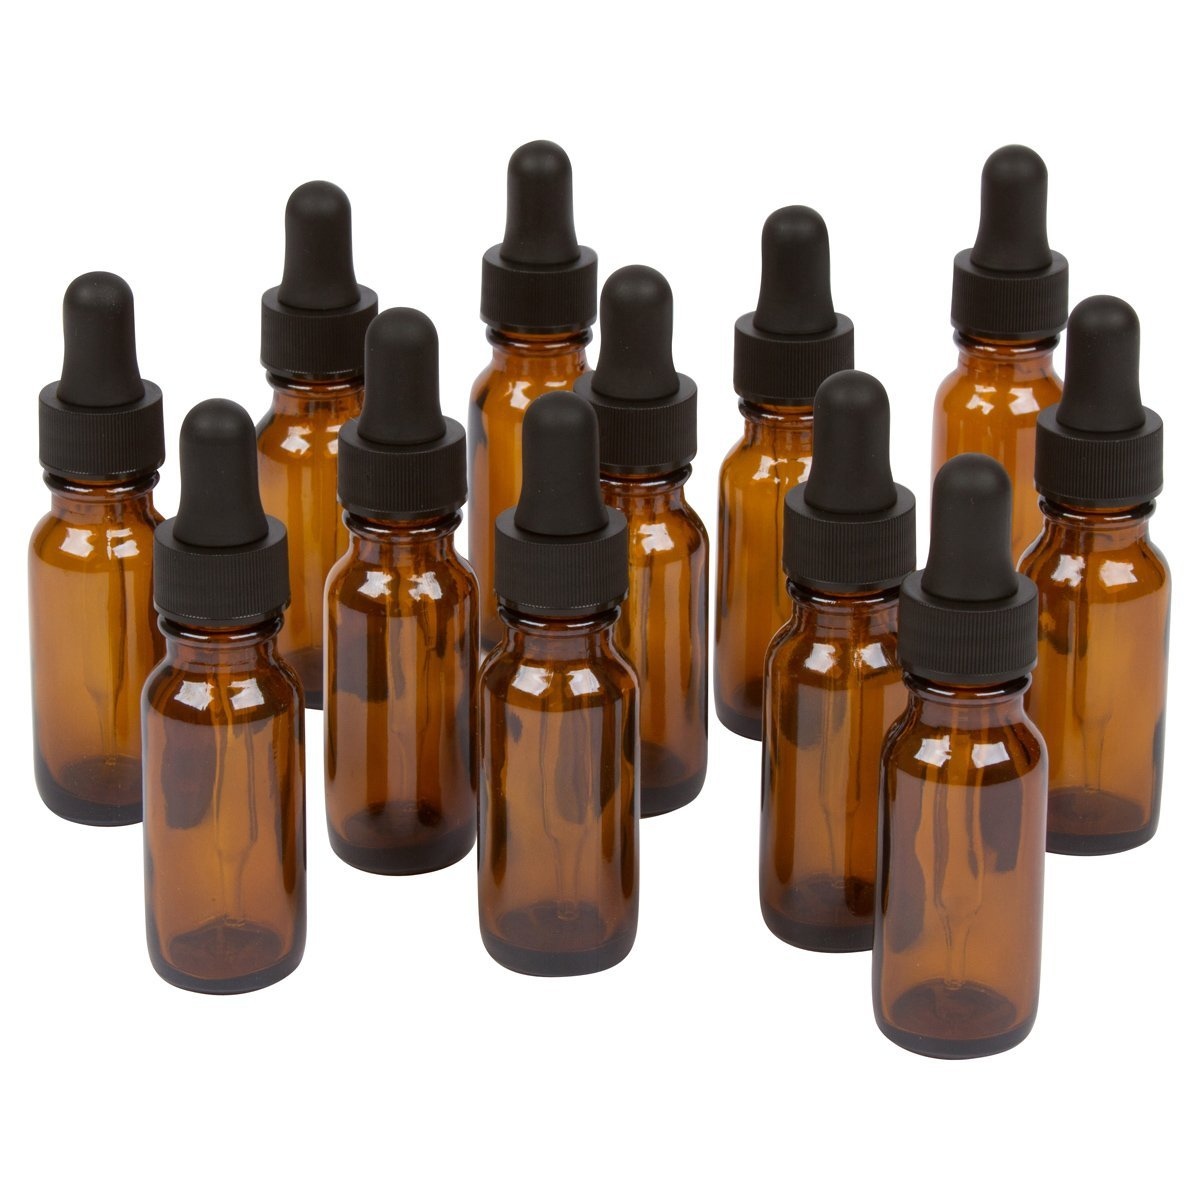 Amber Round Bottles For Essential Oils And Liquids With Black Rubber Bulb Glass Droppers, 15 Ml, Pack Of 12